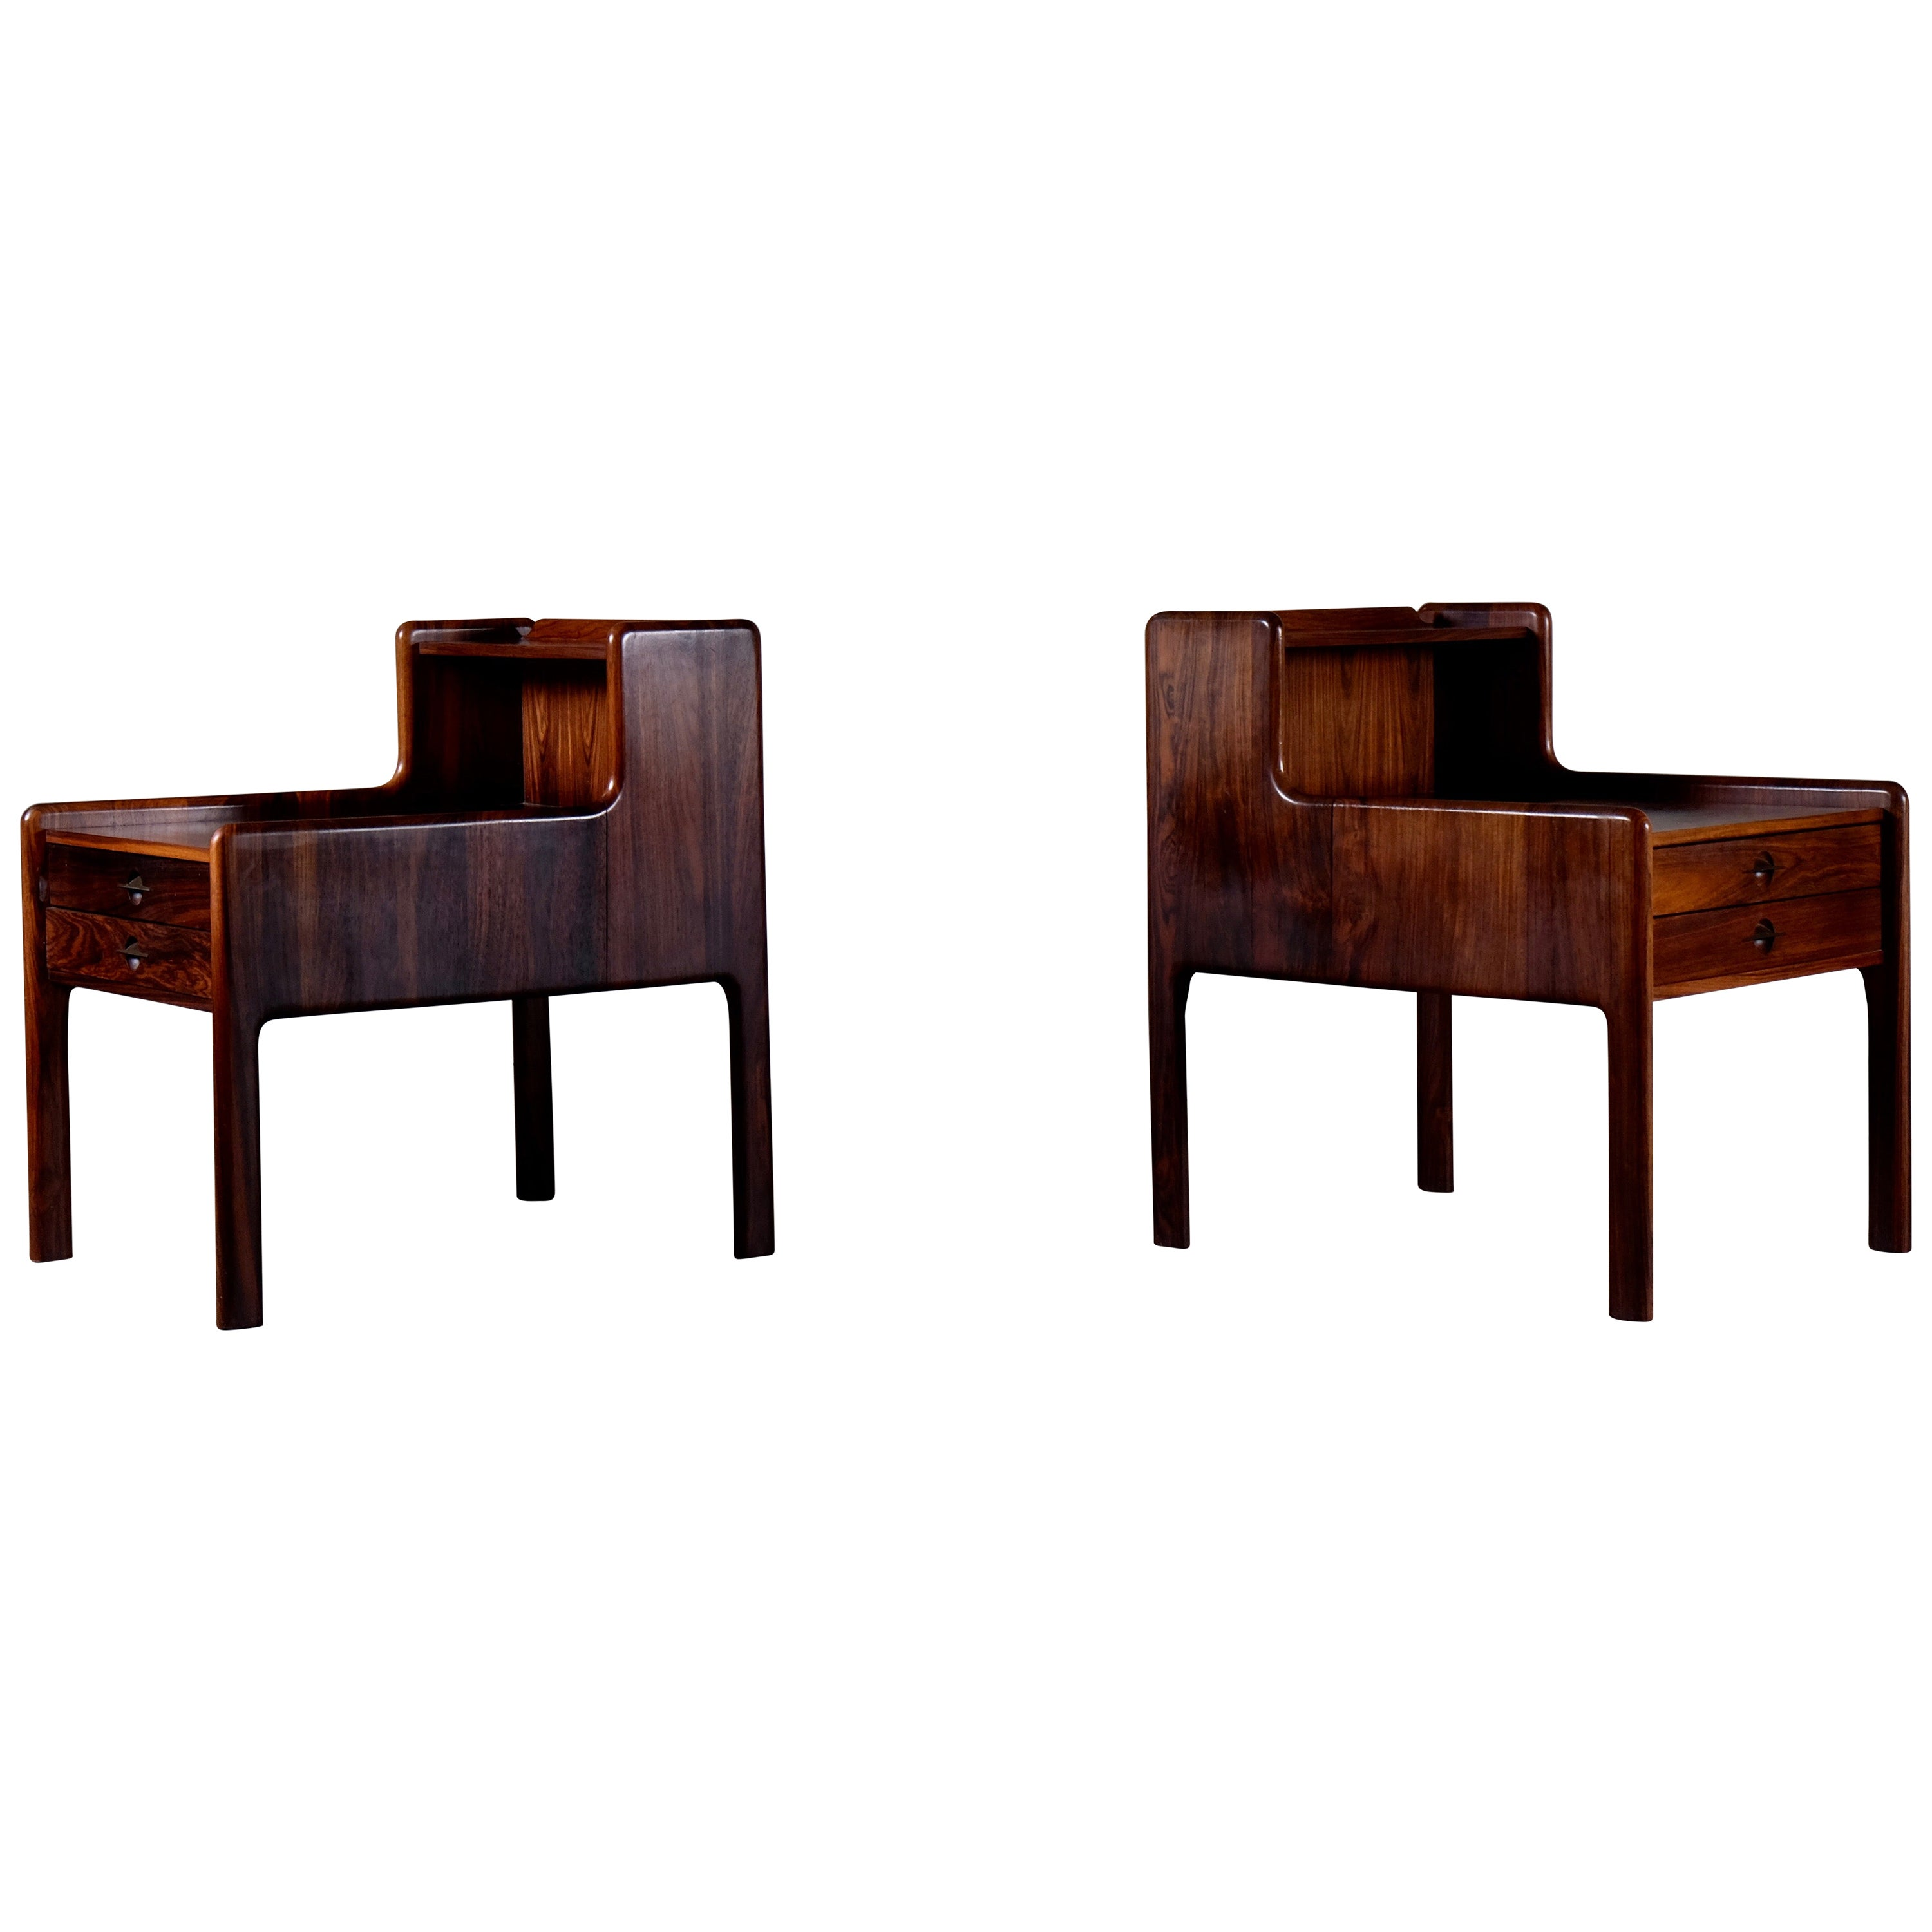 Pair of Danish Bedside Tables in Rosewood, 1960s